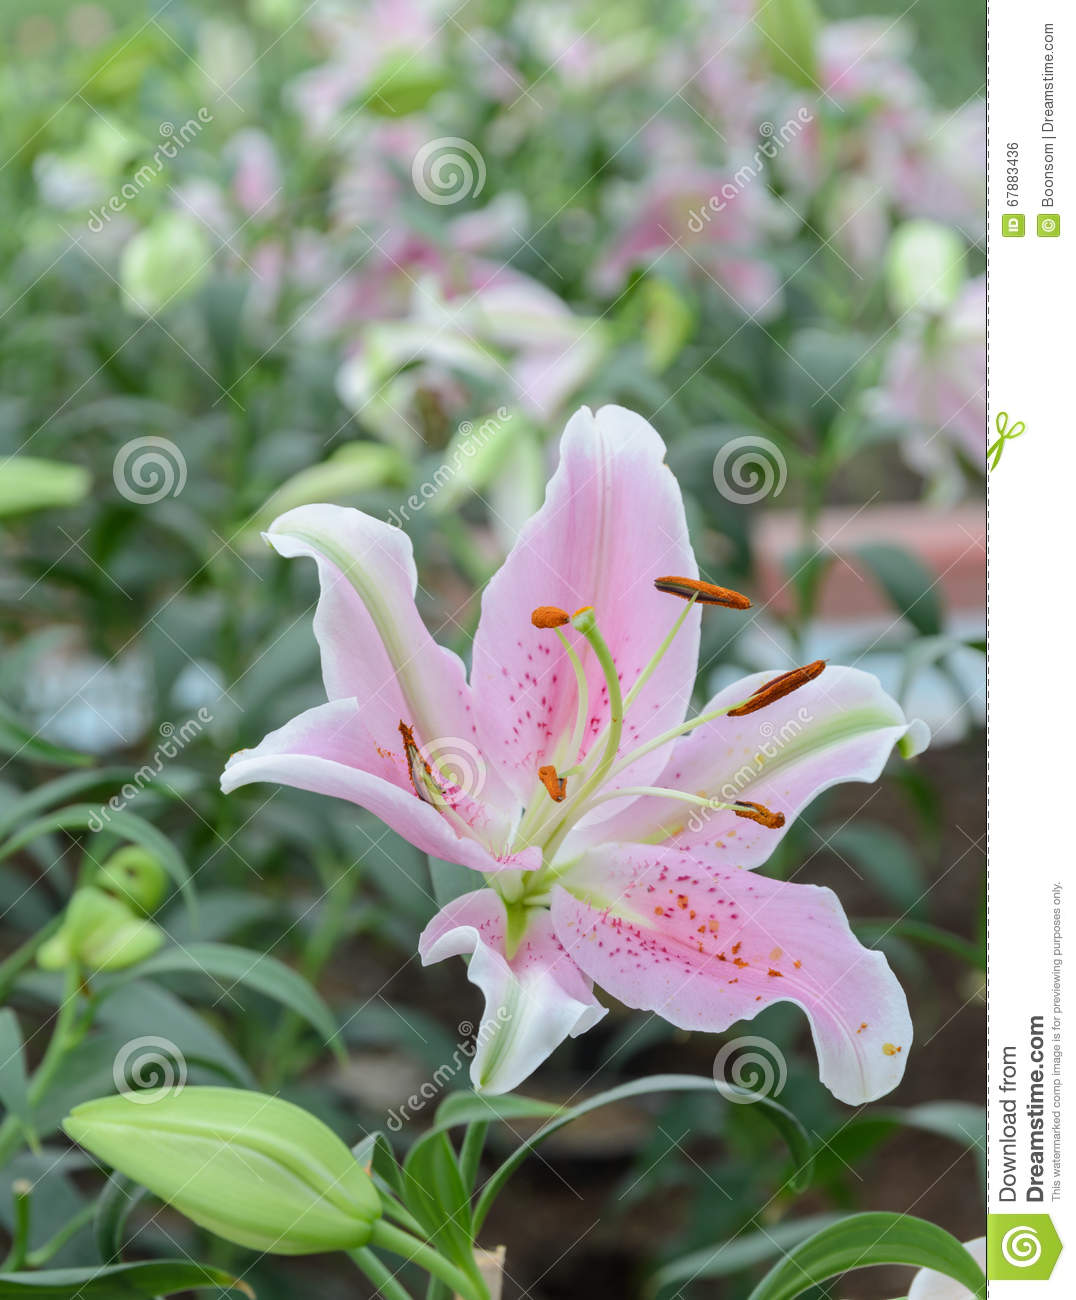 Pink easter lily flower stock photo image of plant garden 67883436 download pink easter lily flower stock photo image of plant garden 67883436 izmirmasajfo